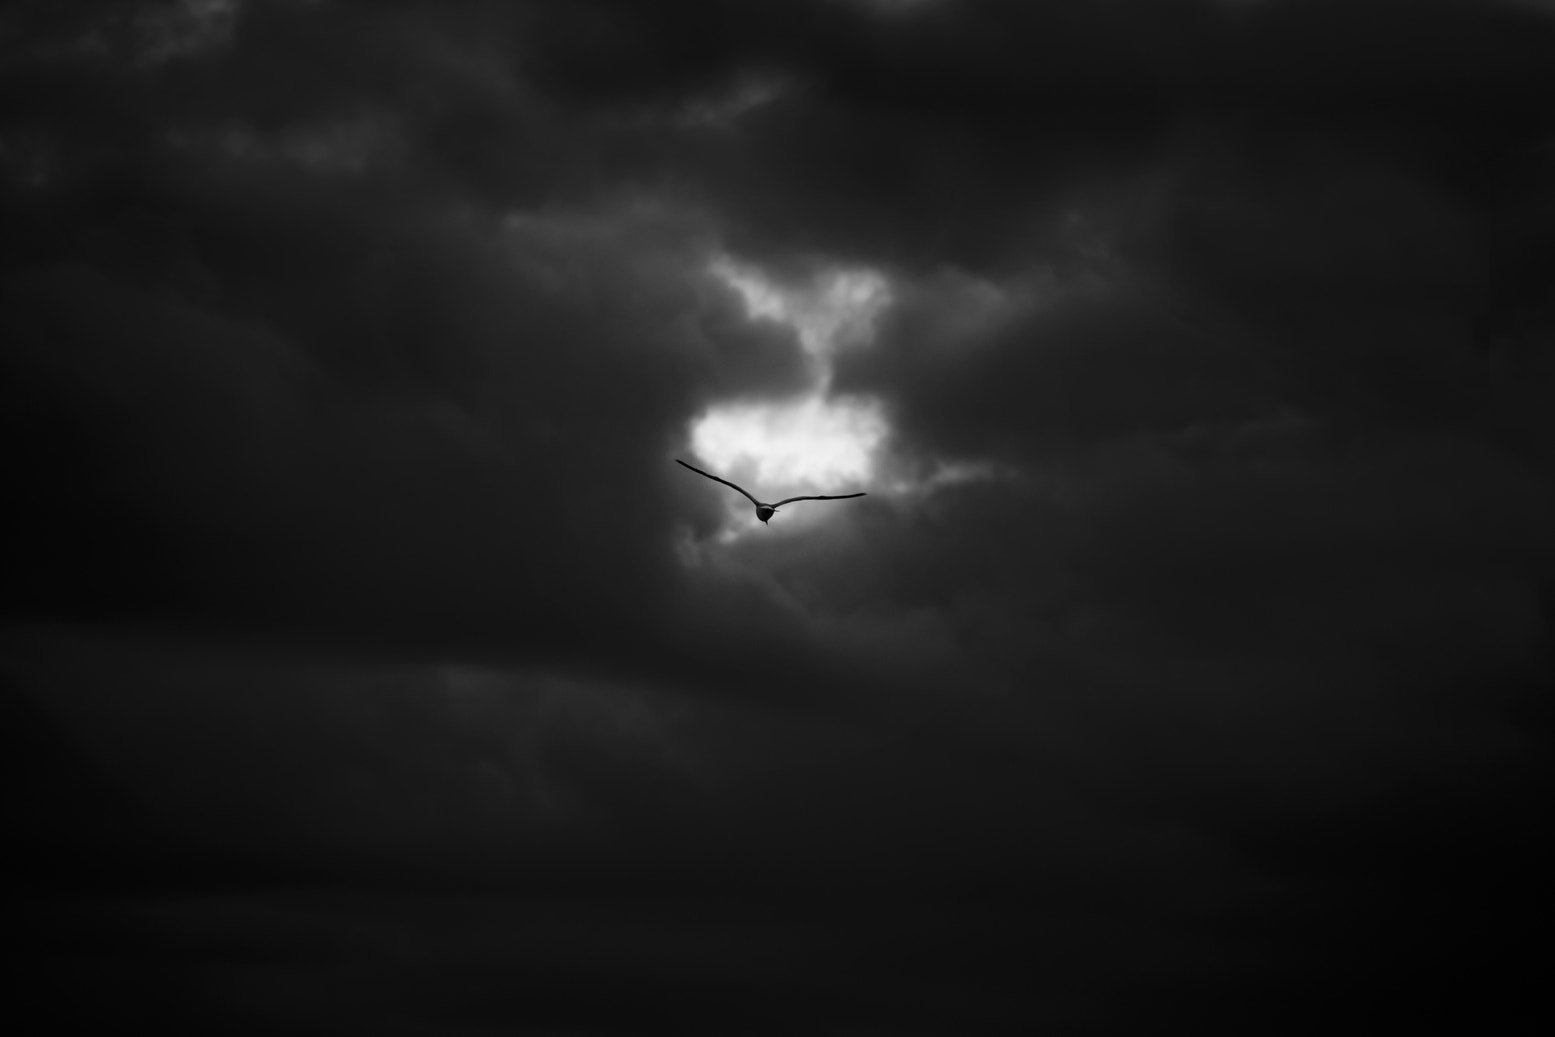 Photograph Flight of the seagull by Henning Evju on 500px